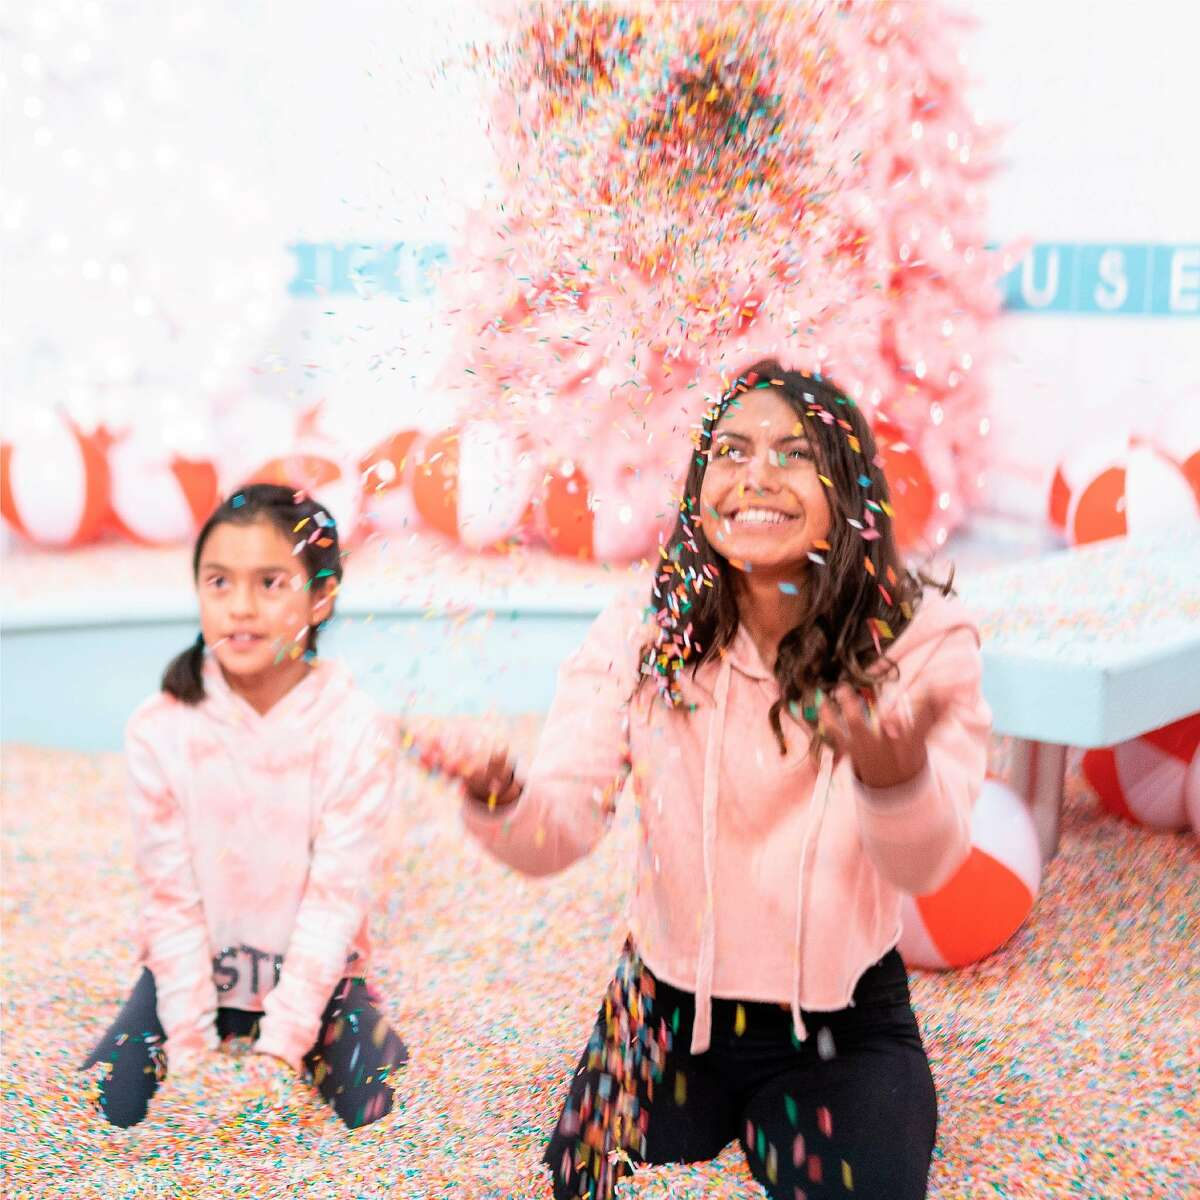 The Museum of Ice Cream in San Francisco will unveil their new Pinkmas exhibit on December 6. It runs until January 6, 2019.